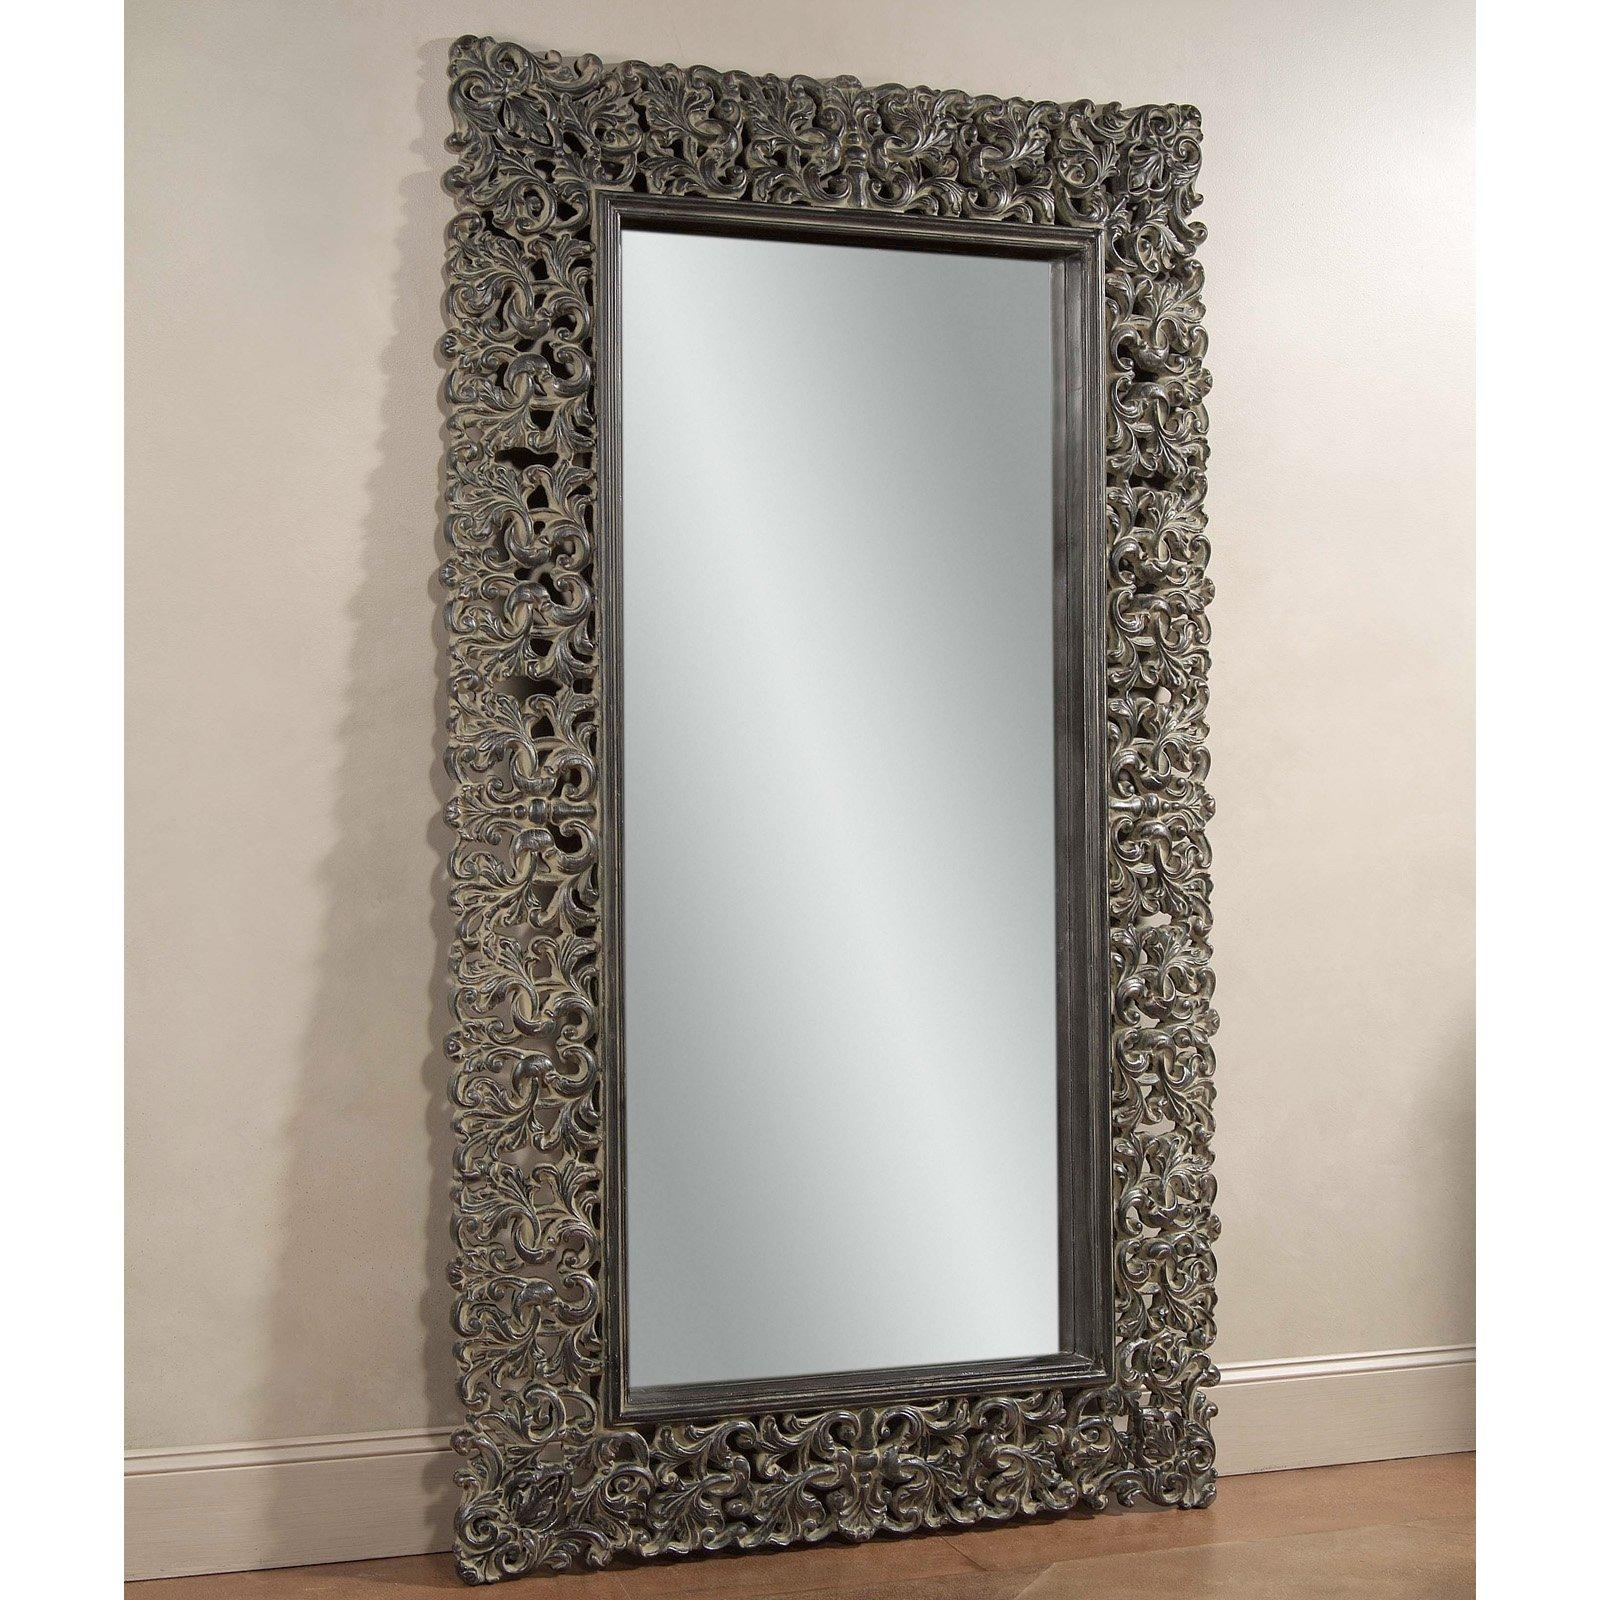 Large Leaning Mirrors Sale | Vanity Decoration Within Huge Mirrors For Sale (Image 11 of 20)